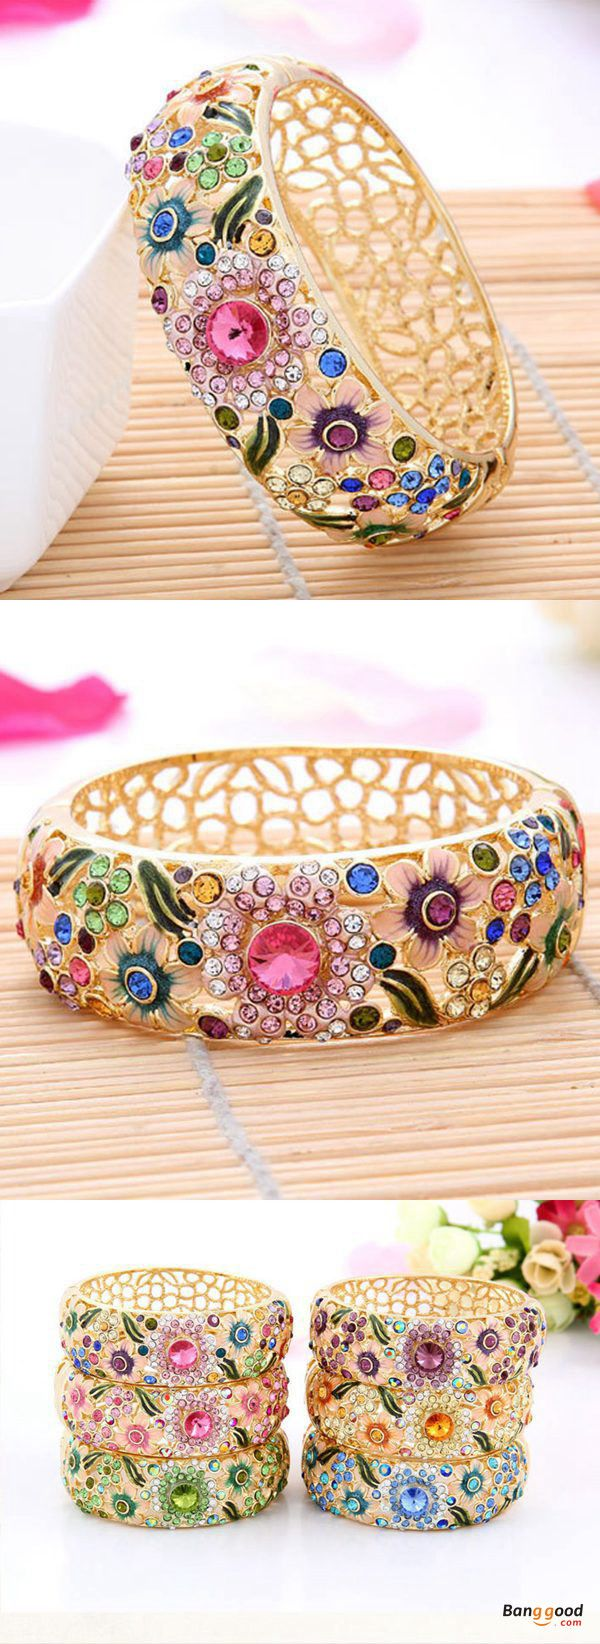 Bundle offer 18k gold plated amp white gold plated necklace 2 ring - Cloisonn 18k Gold Plated Rhinestone Hollow Flower Leaf Wide Bracelet